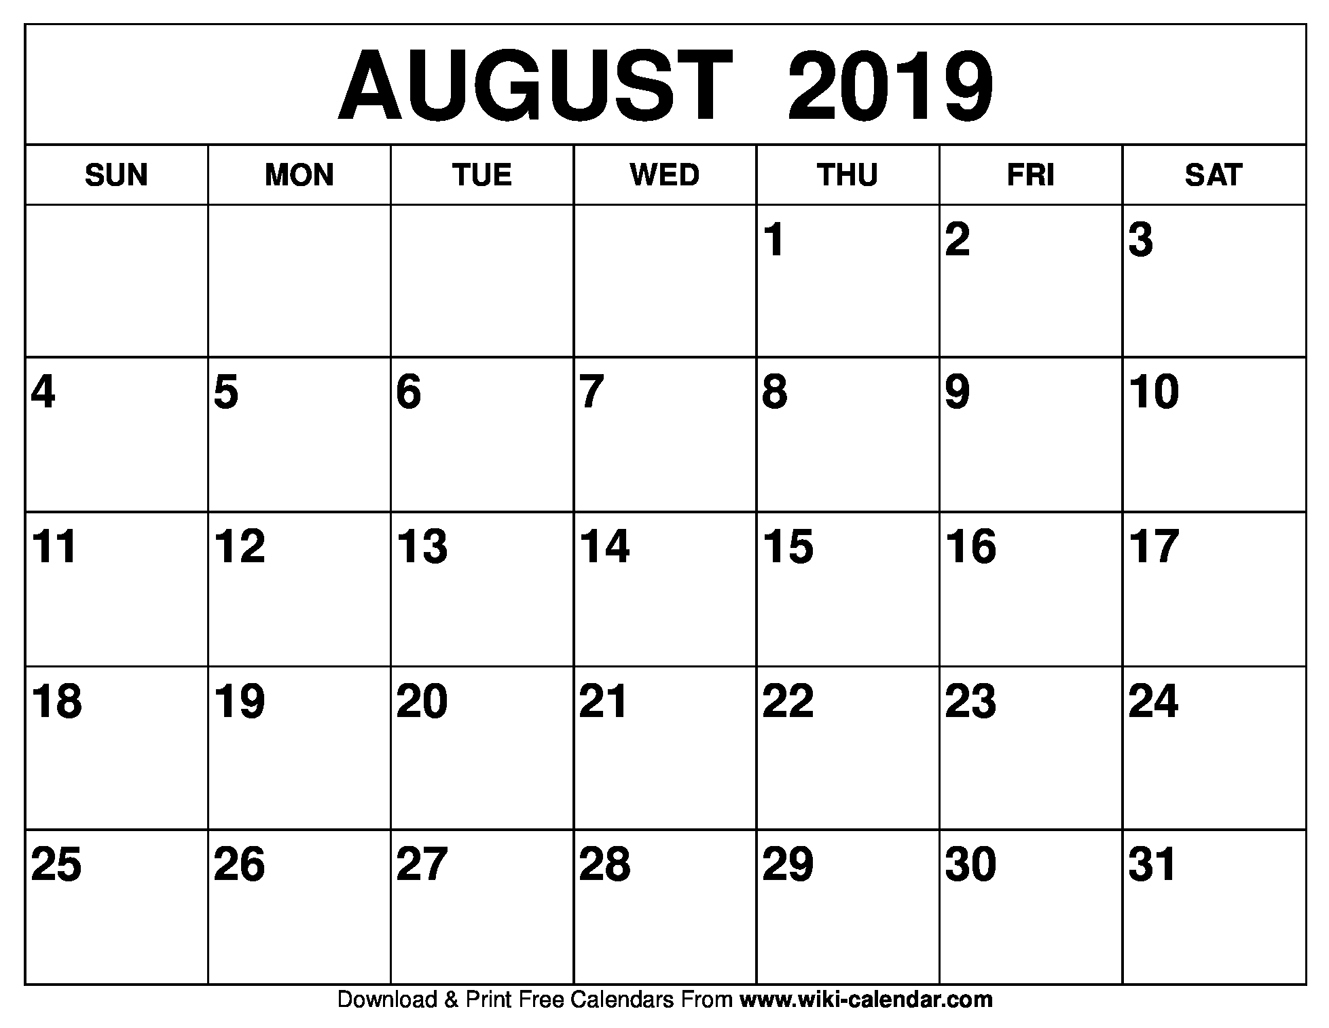 Calendar Of August 2019 Printable Monthly Template - Free